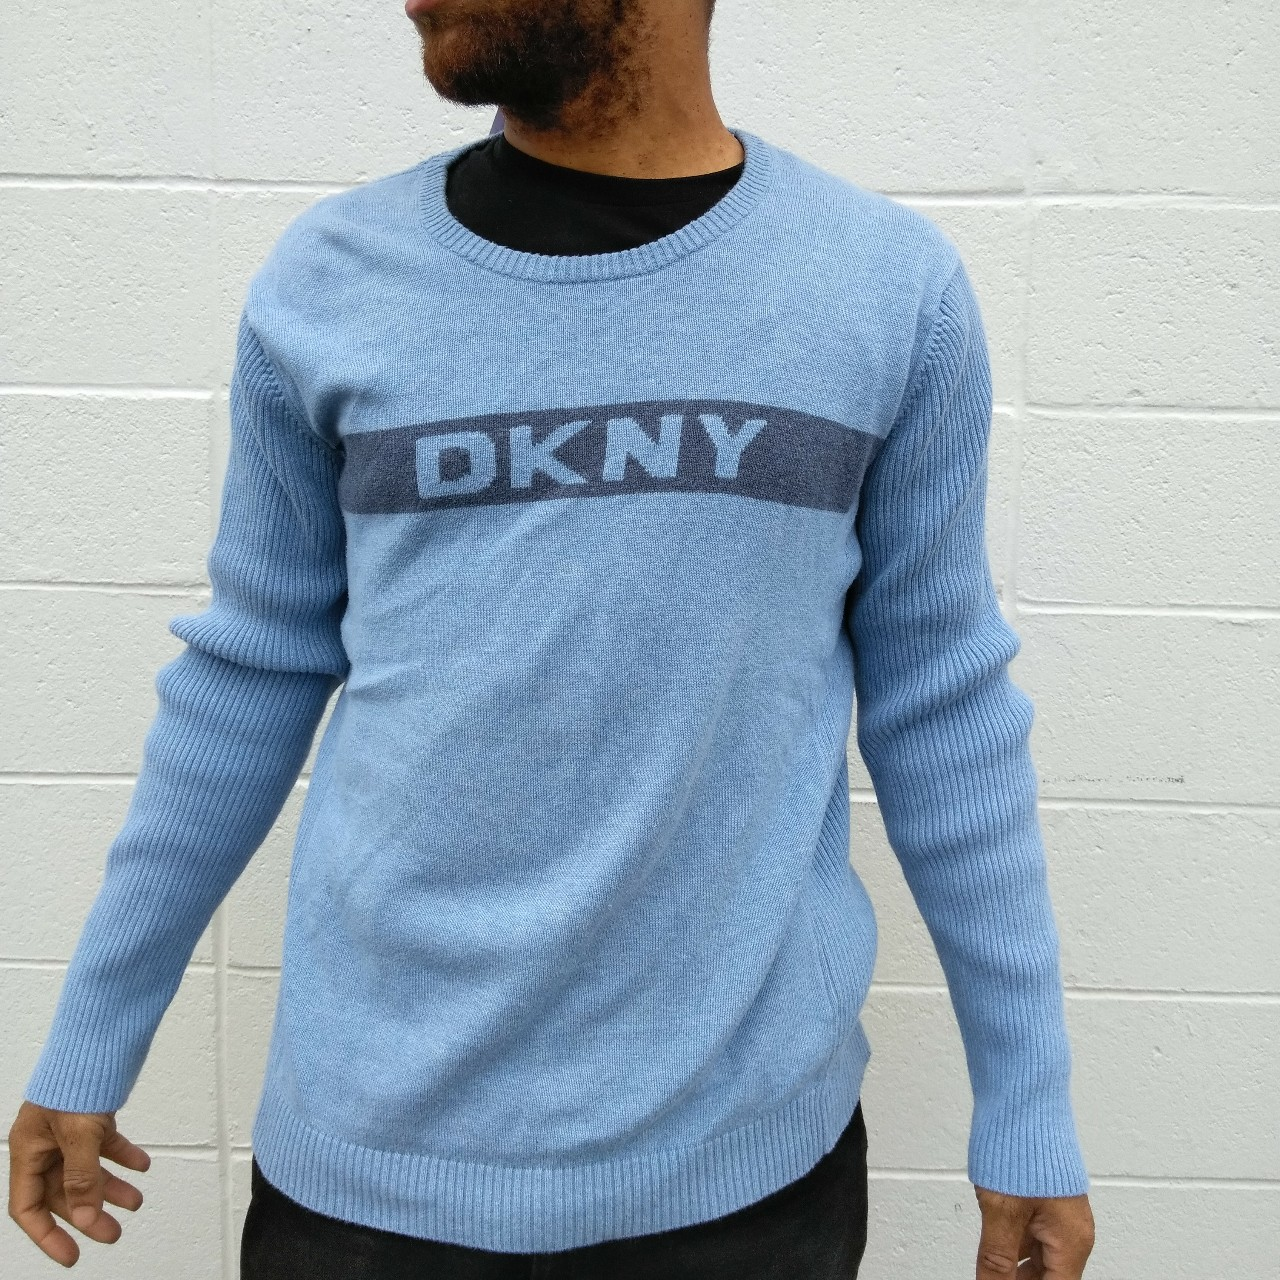 Product Image 1 - DKNY spell out sweater men's